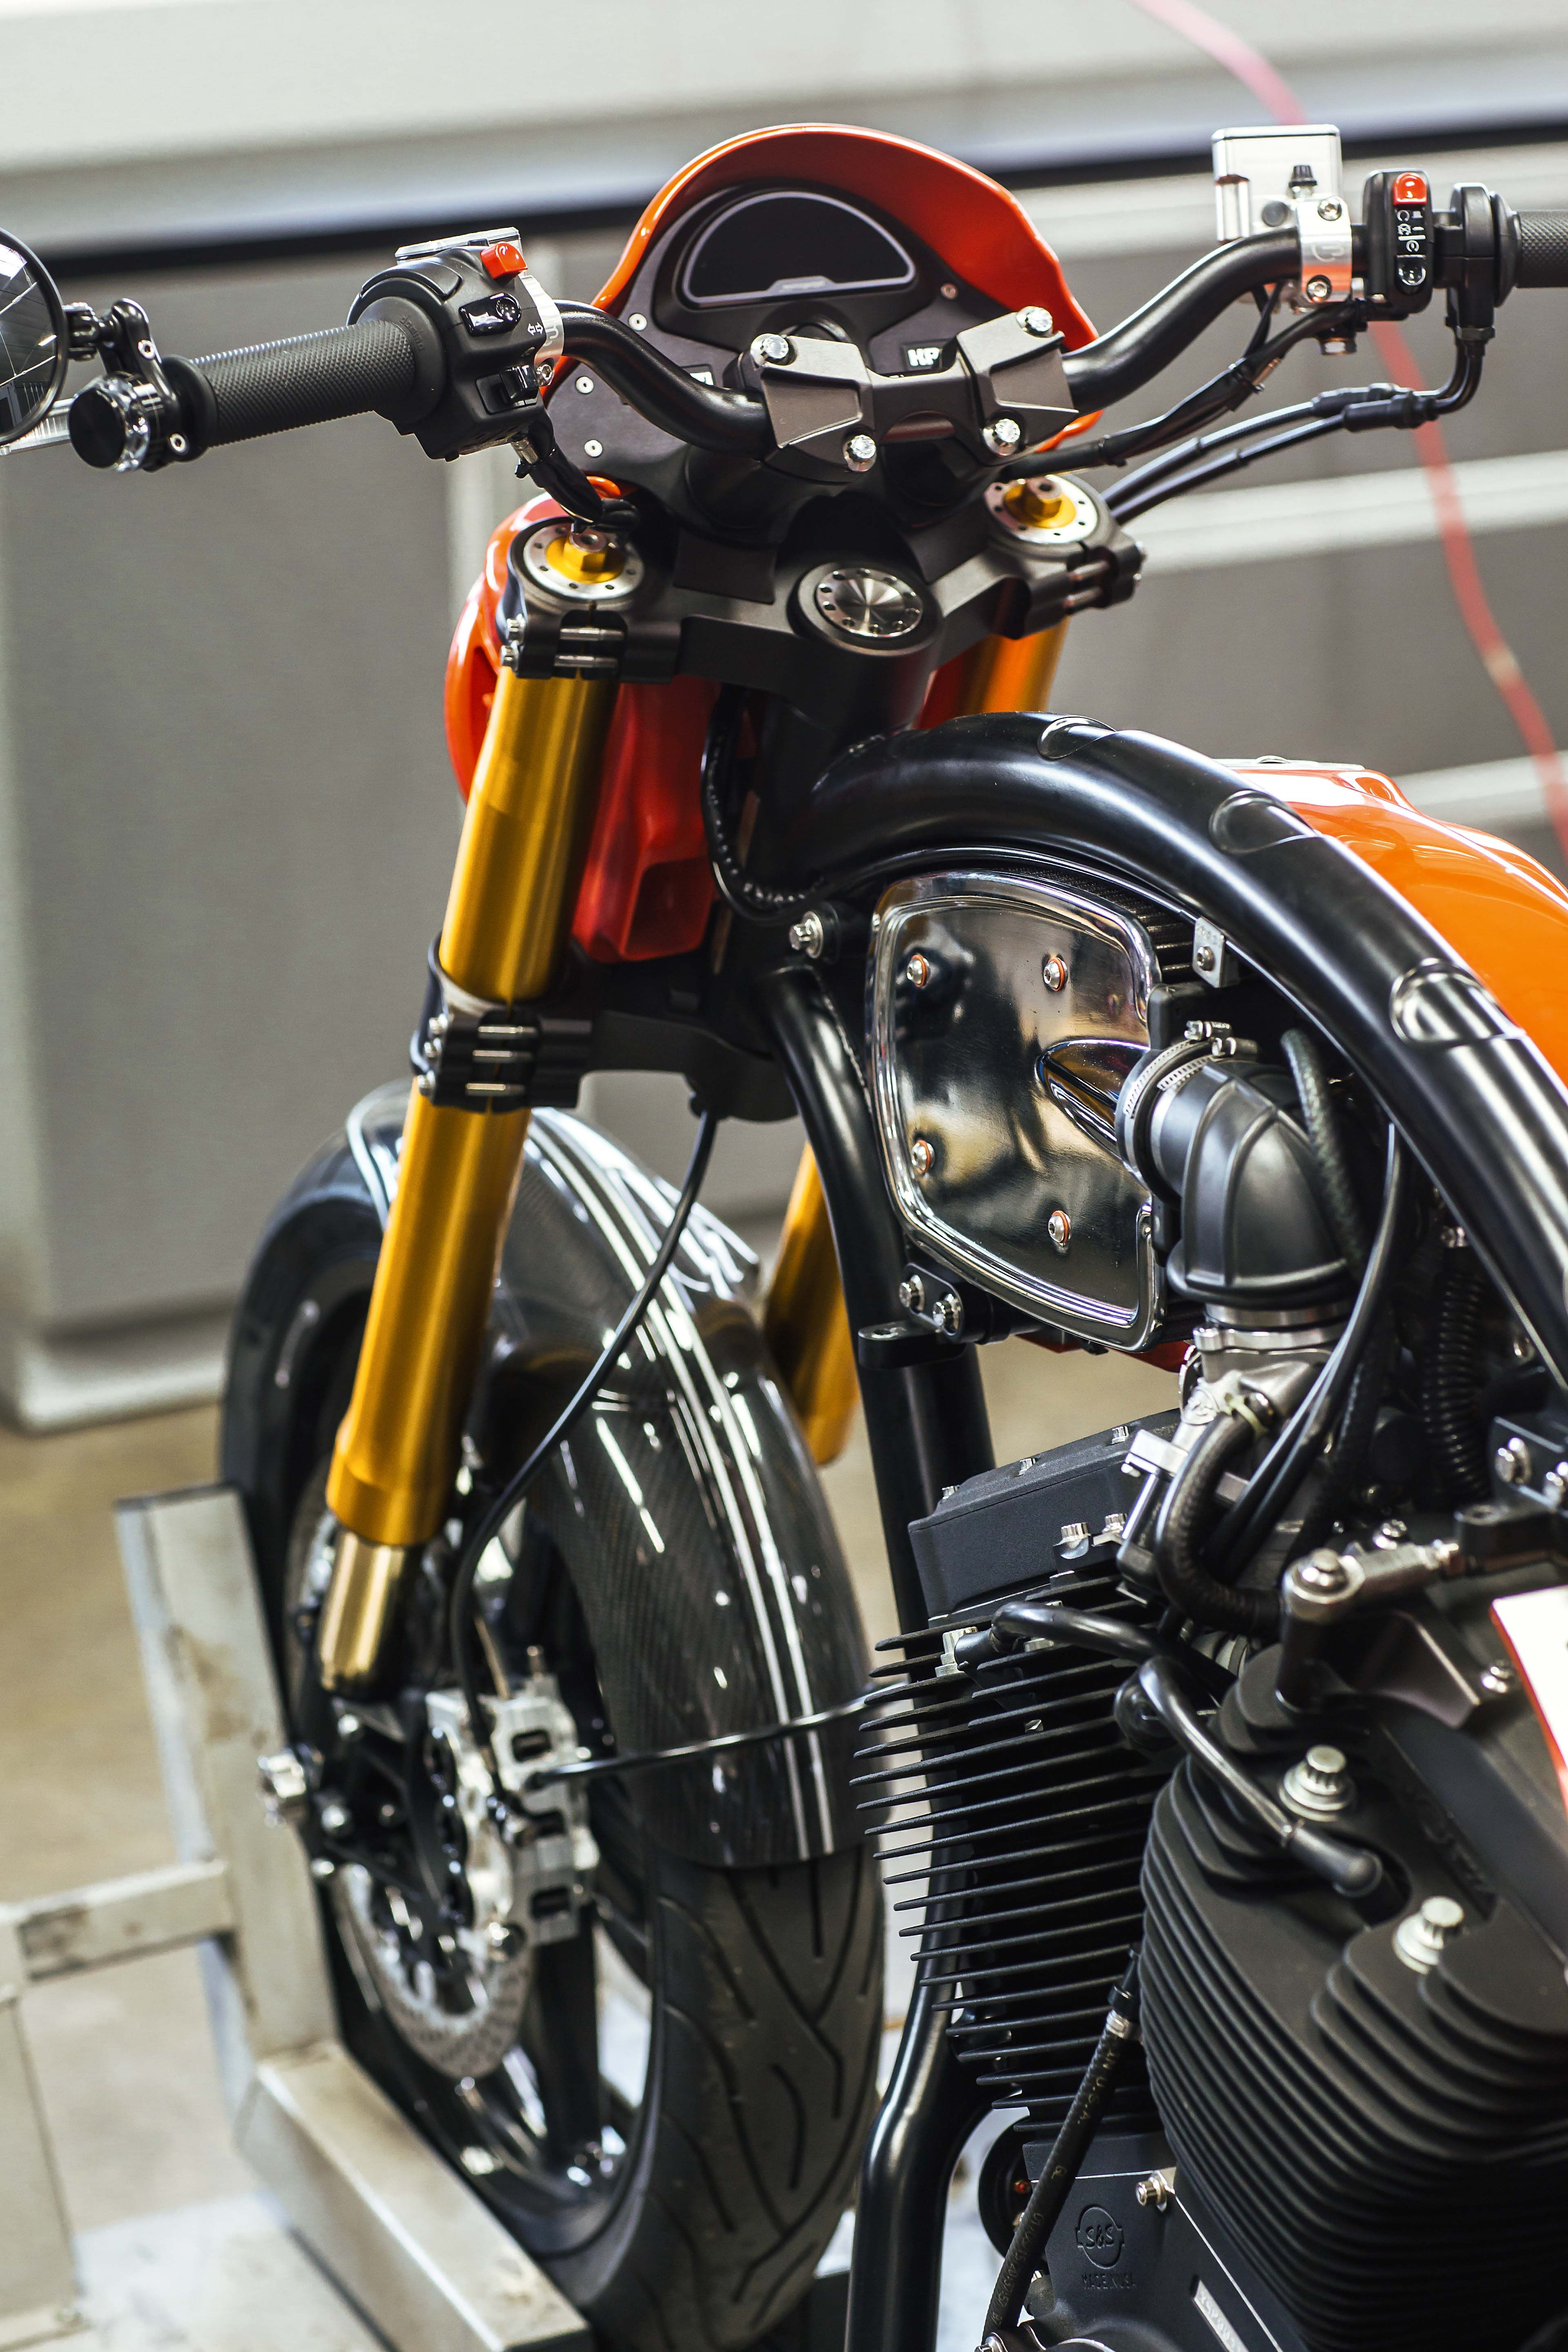 Keanu Reeves' Motorcycle Is an Extremely Exotic Evil-Handling Machine